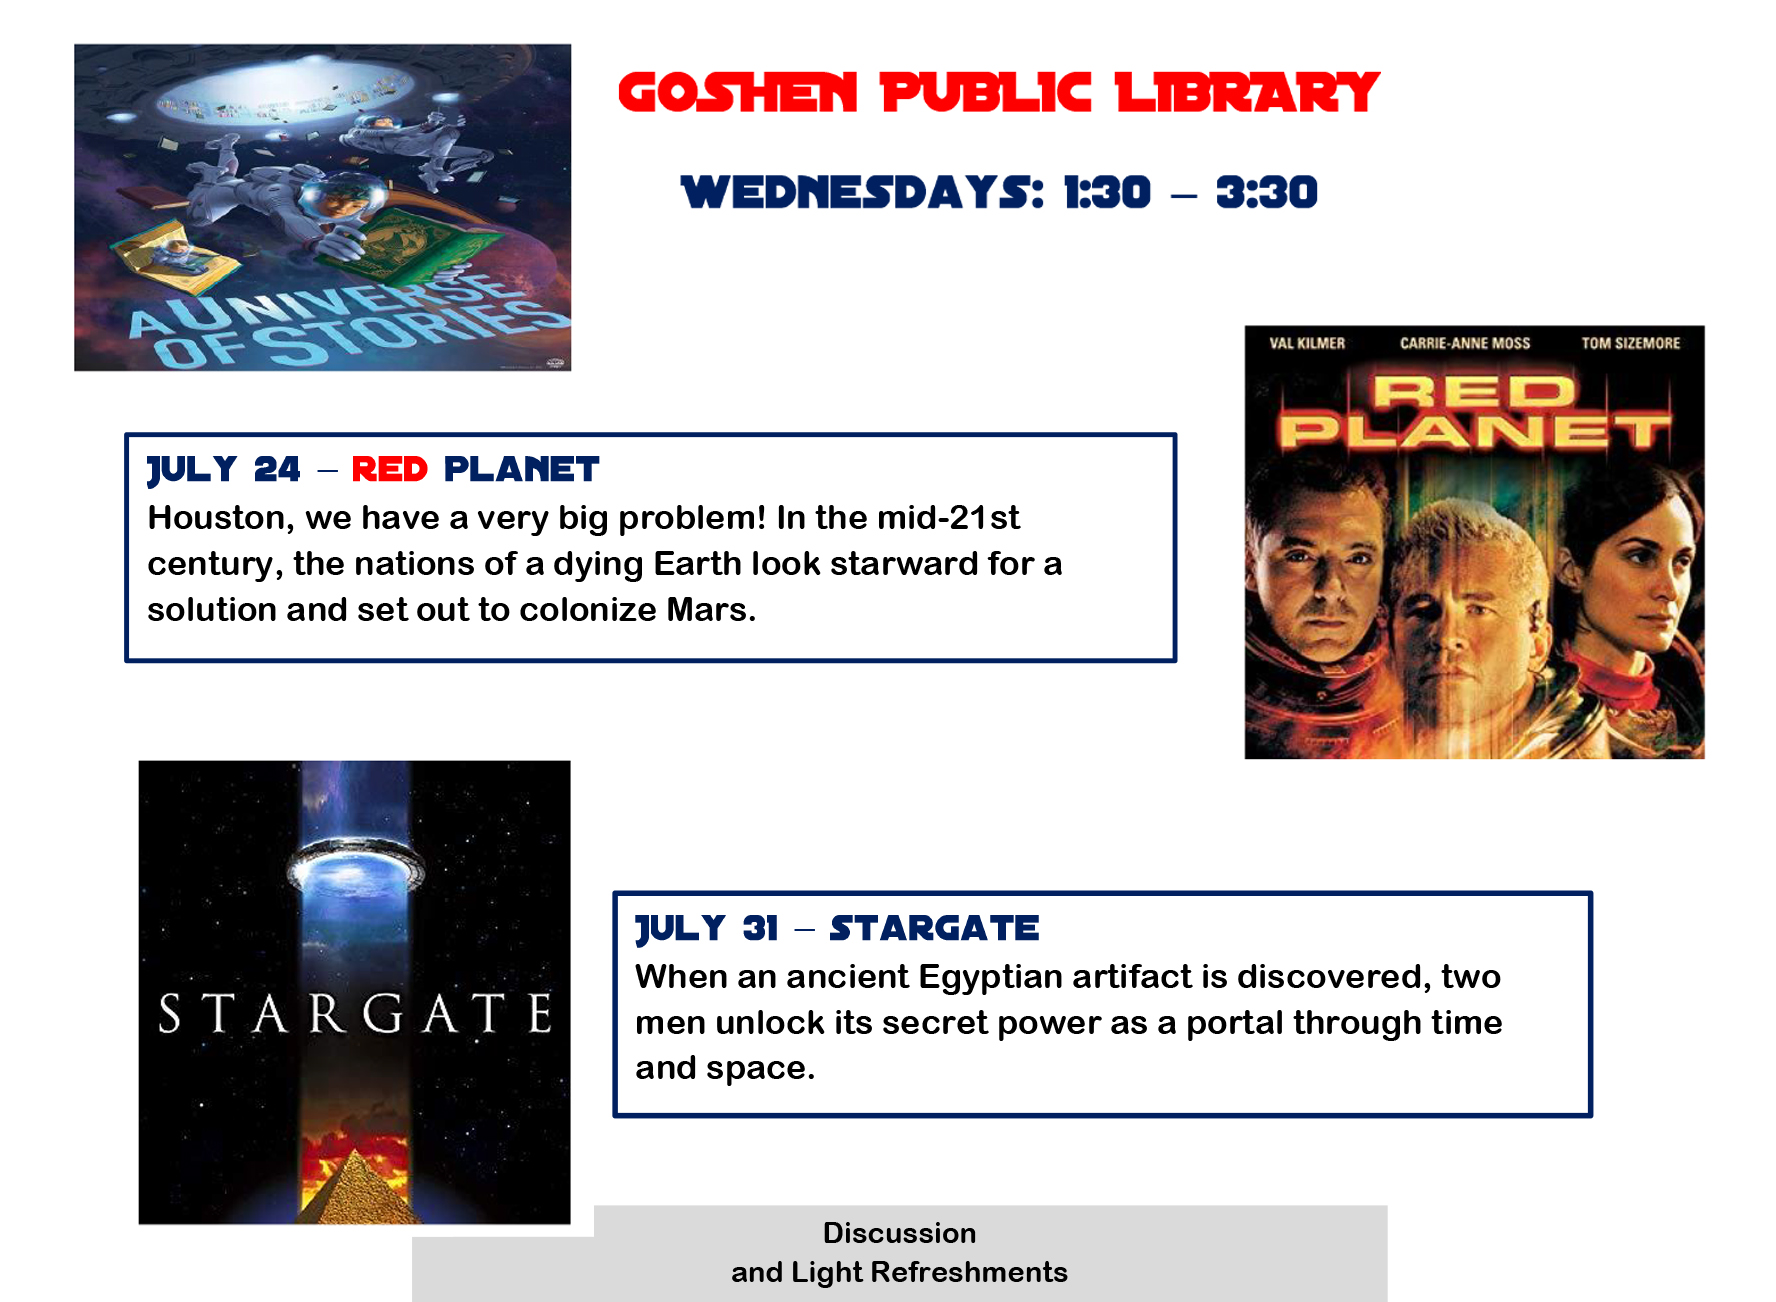 GOSHEN PUBLIC LIBRARY Film - july two 2019p_edited-1